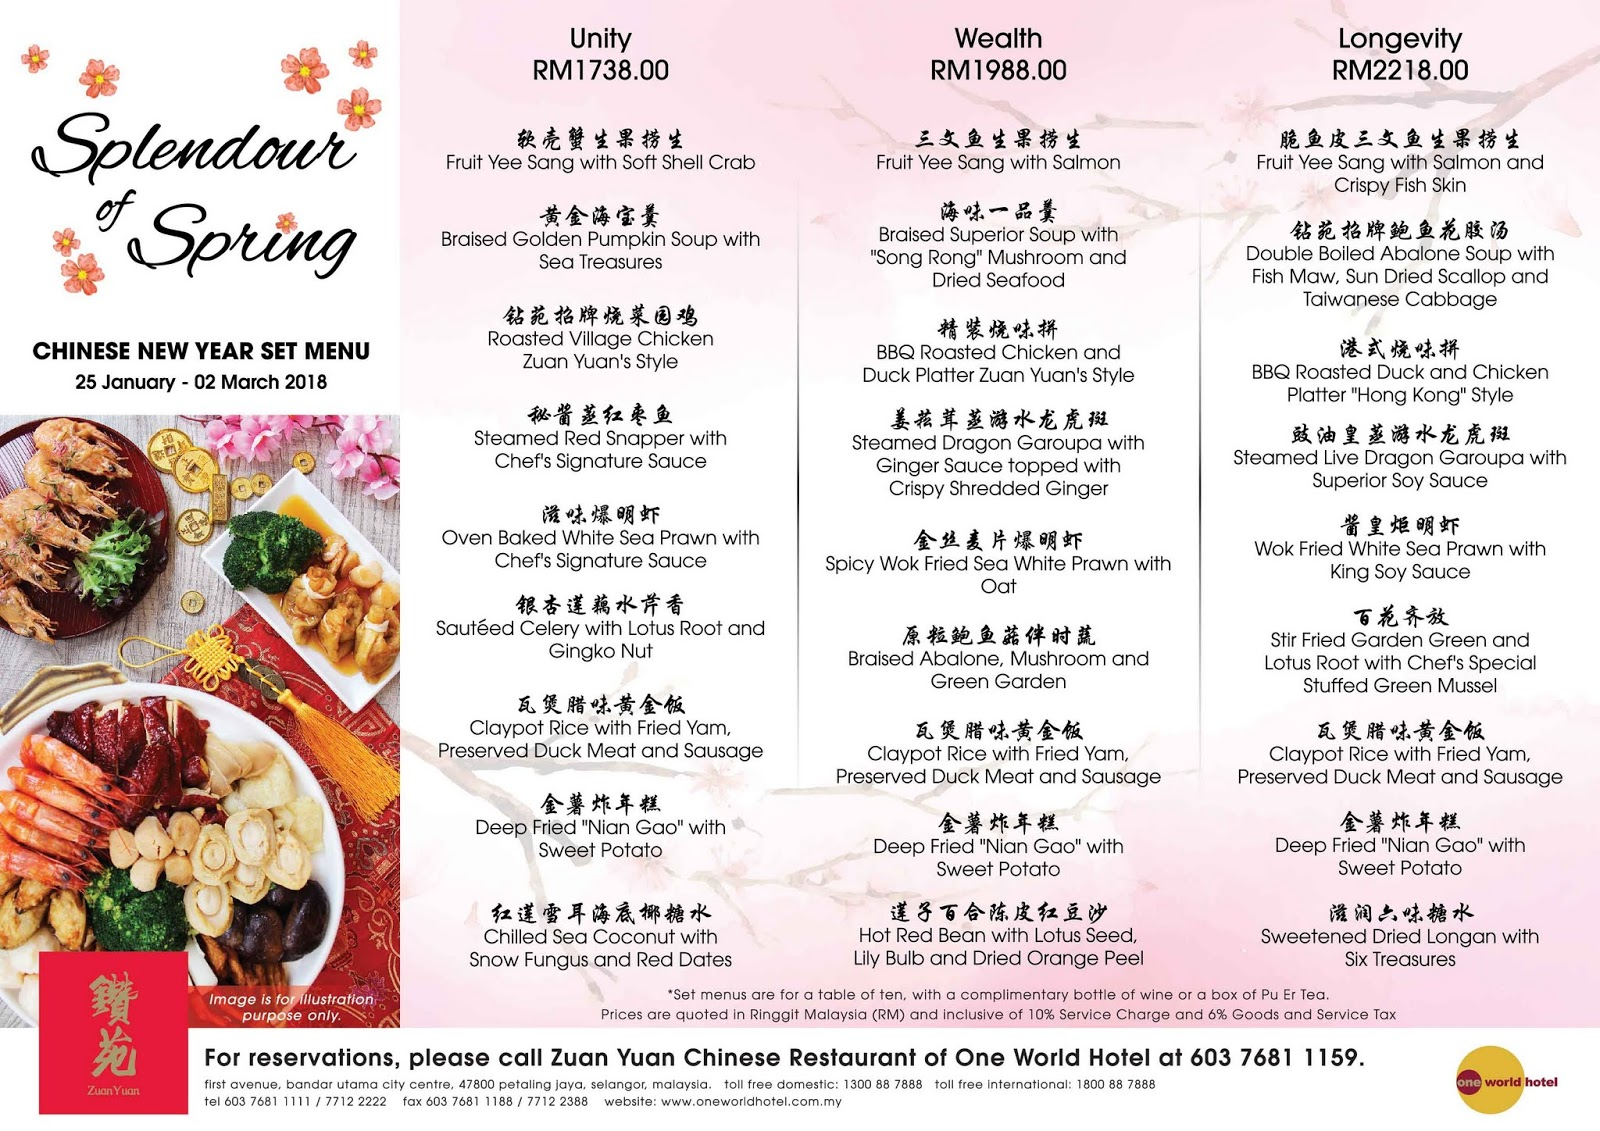 CHASING FOOD DREAMS: CNY Menu 2017 @ Zuan Yuan, One World Hotel